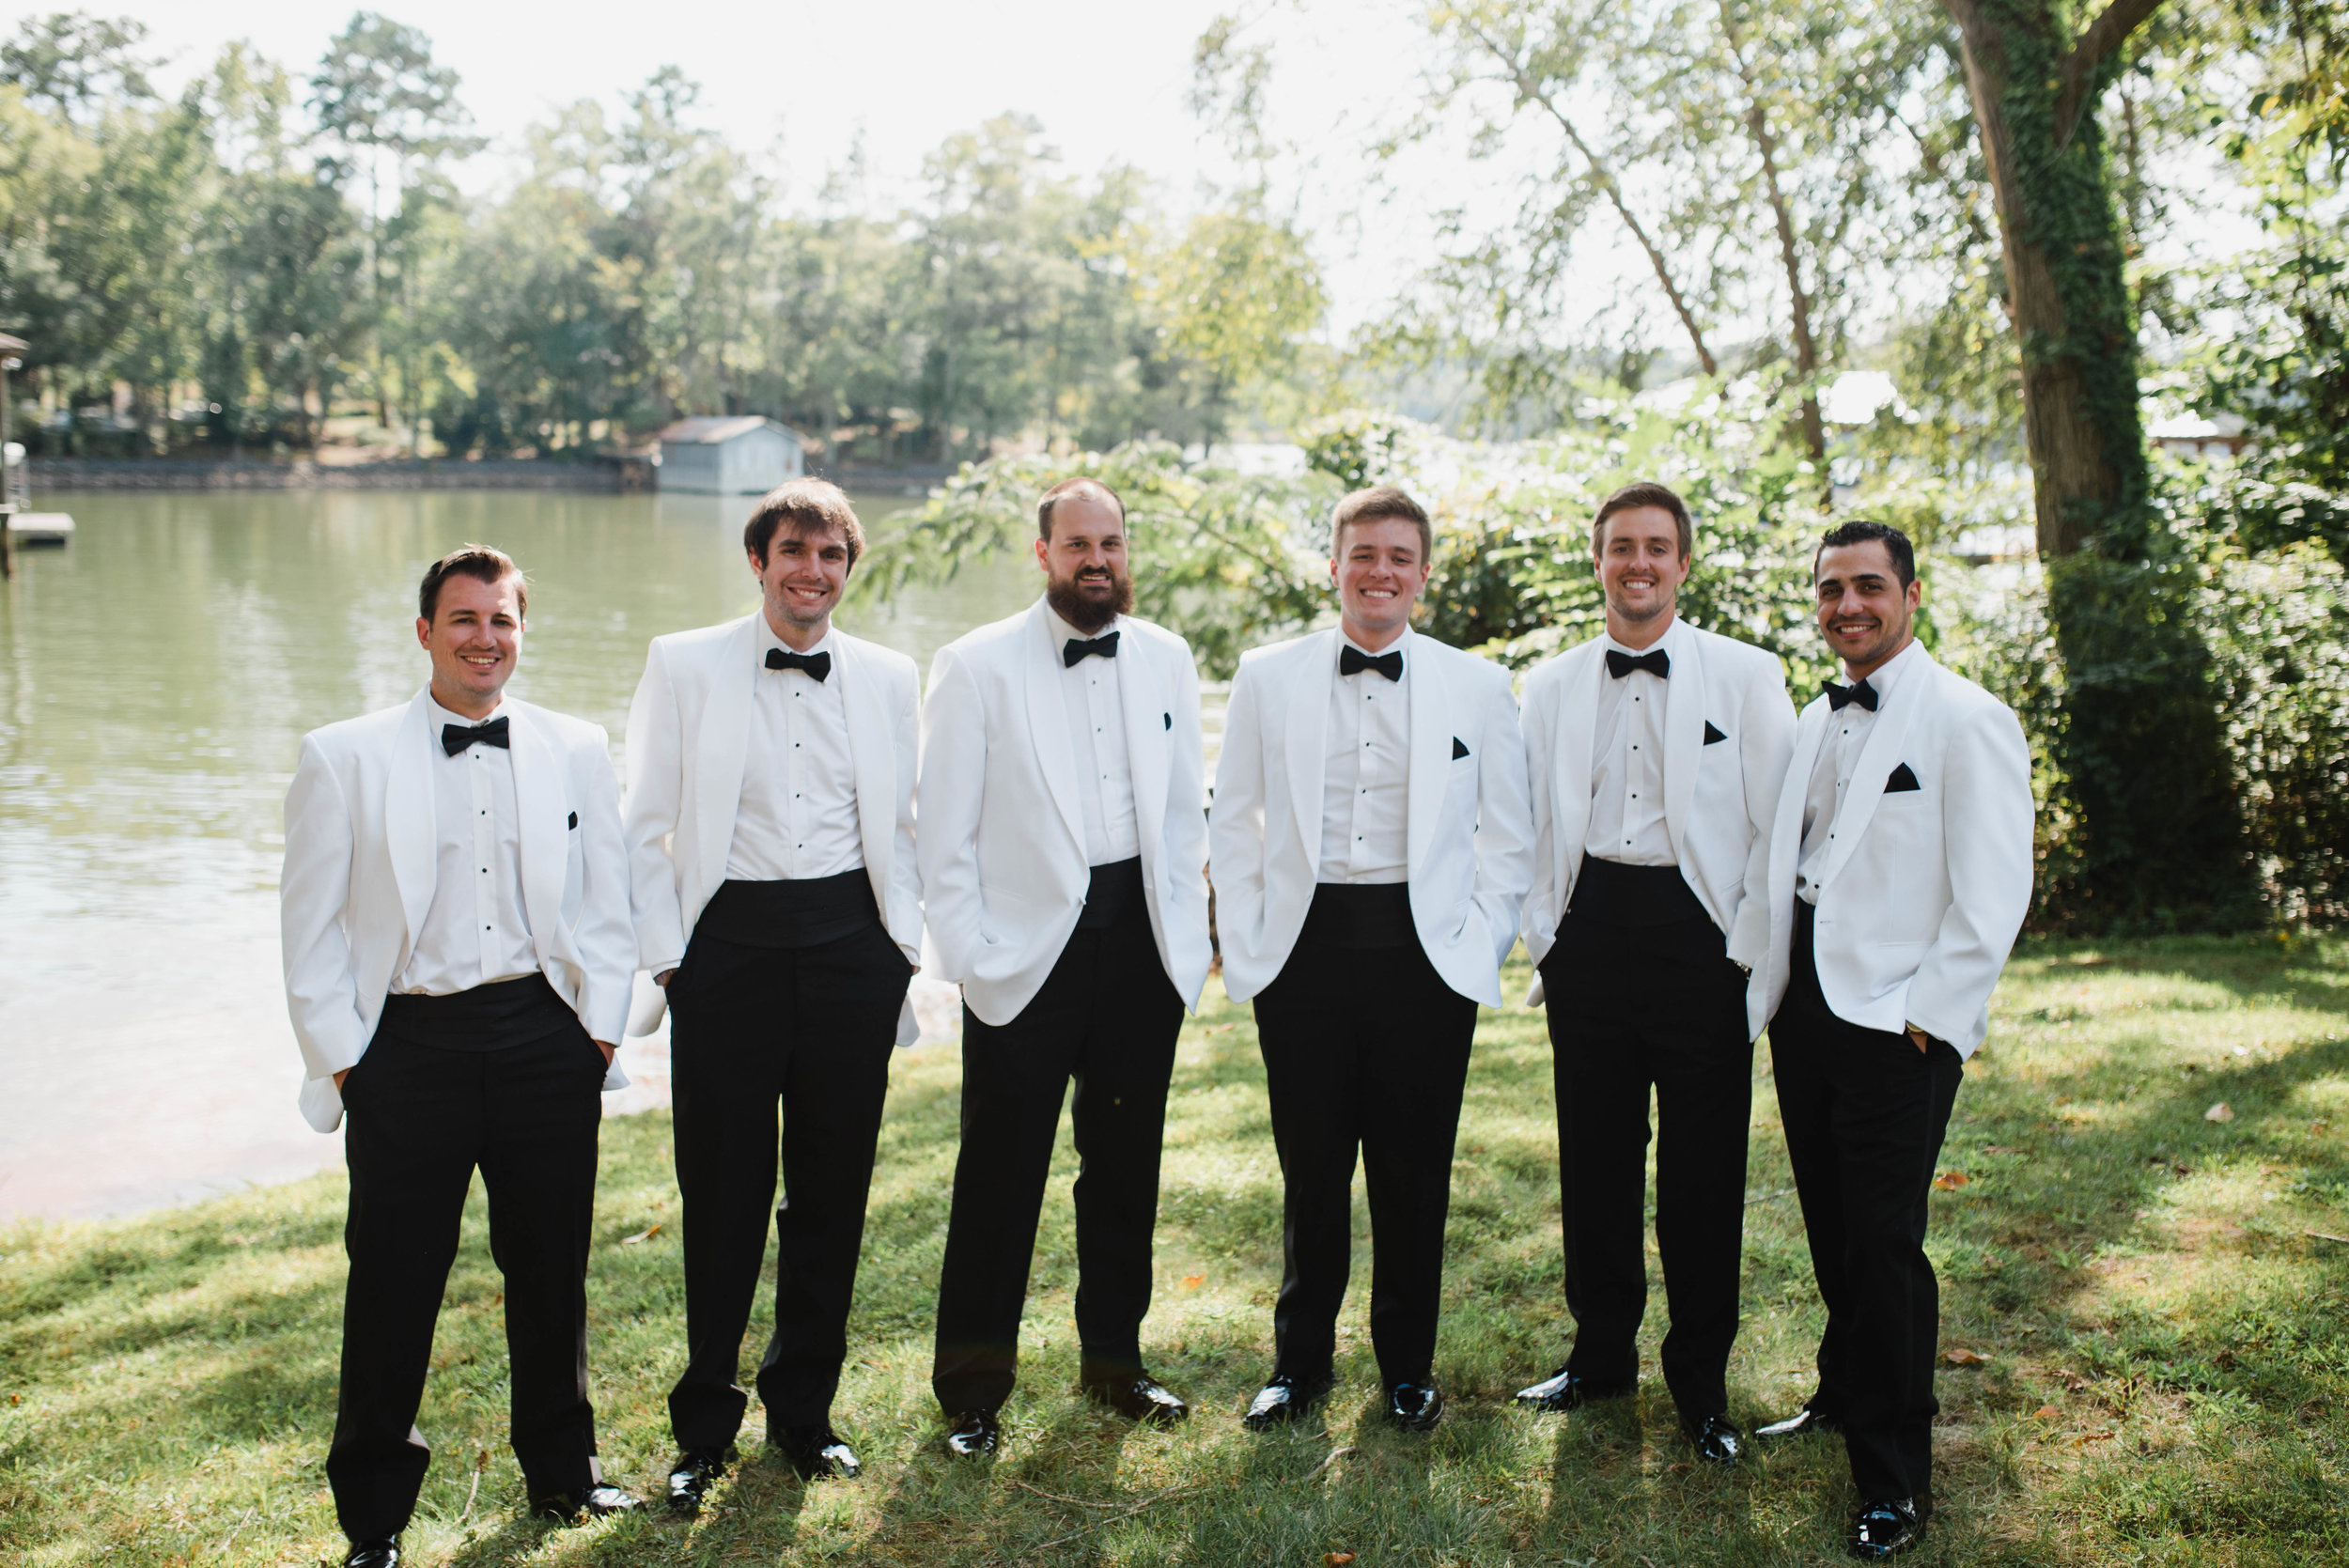 Rainbolt wedding-94.jpg